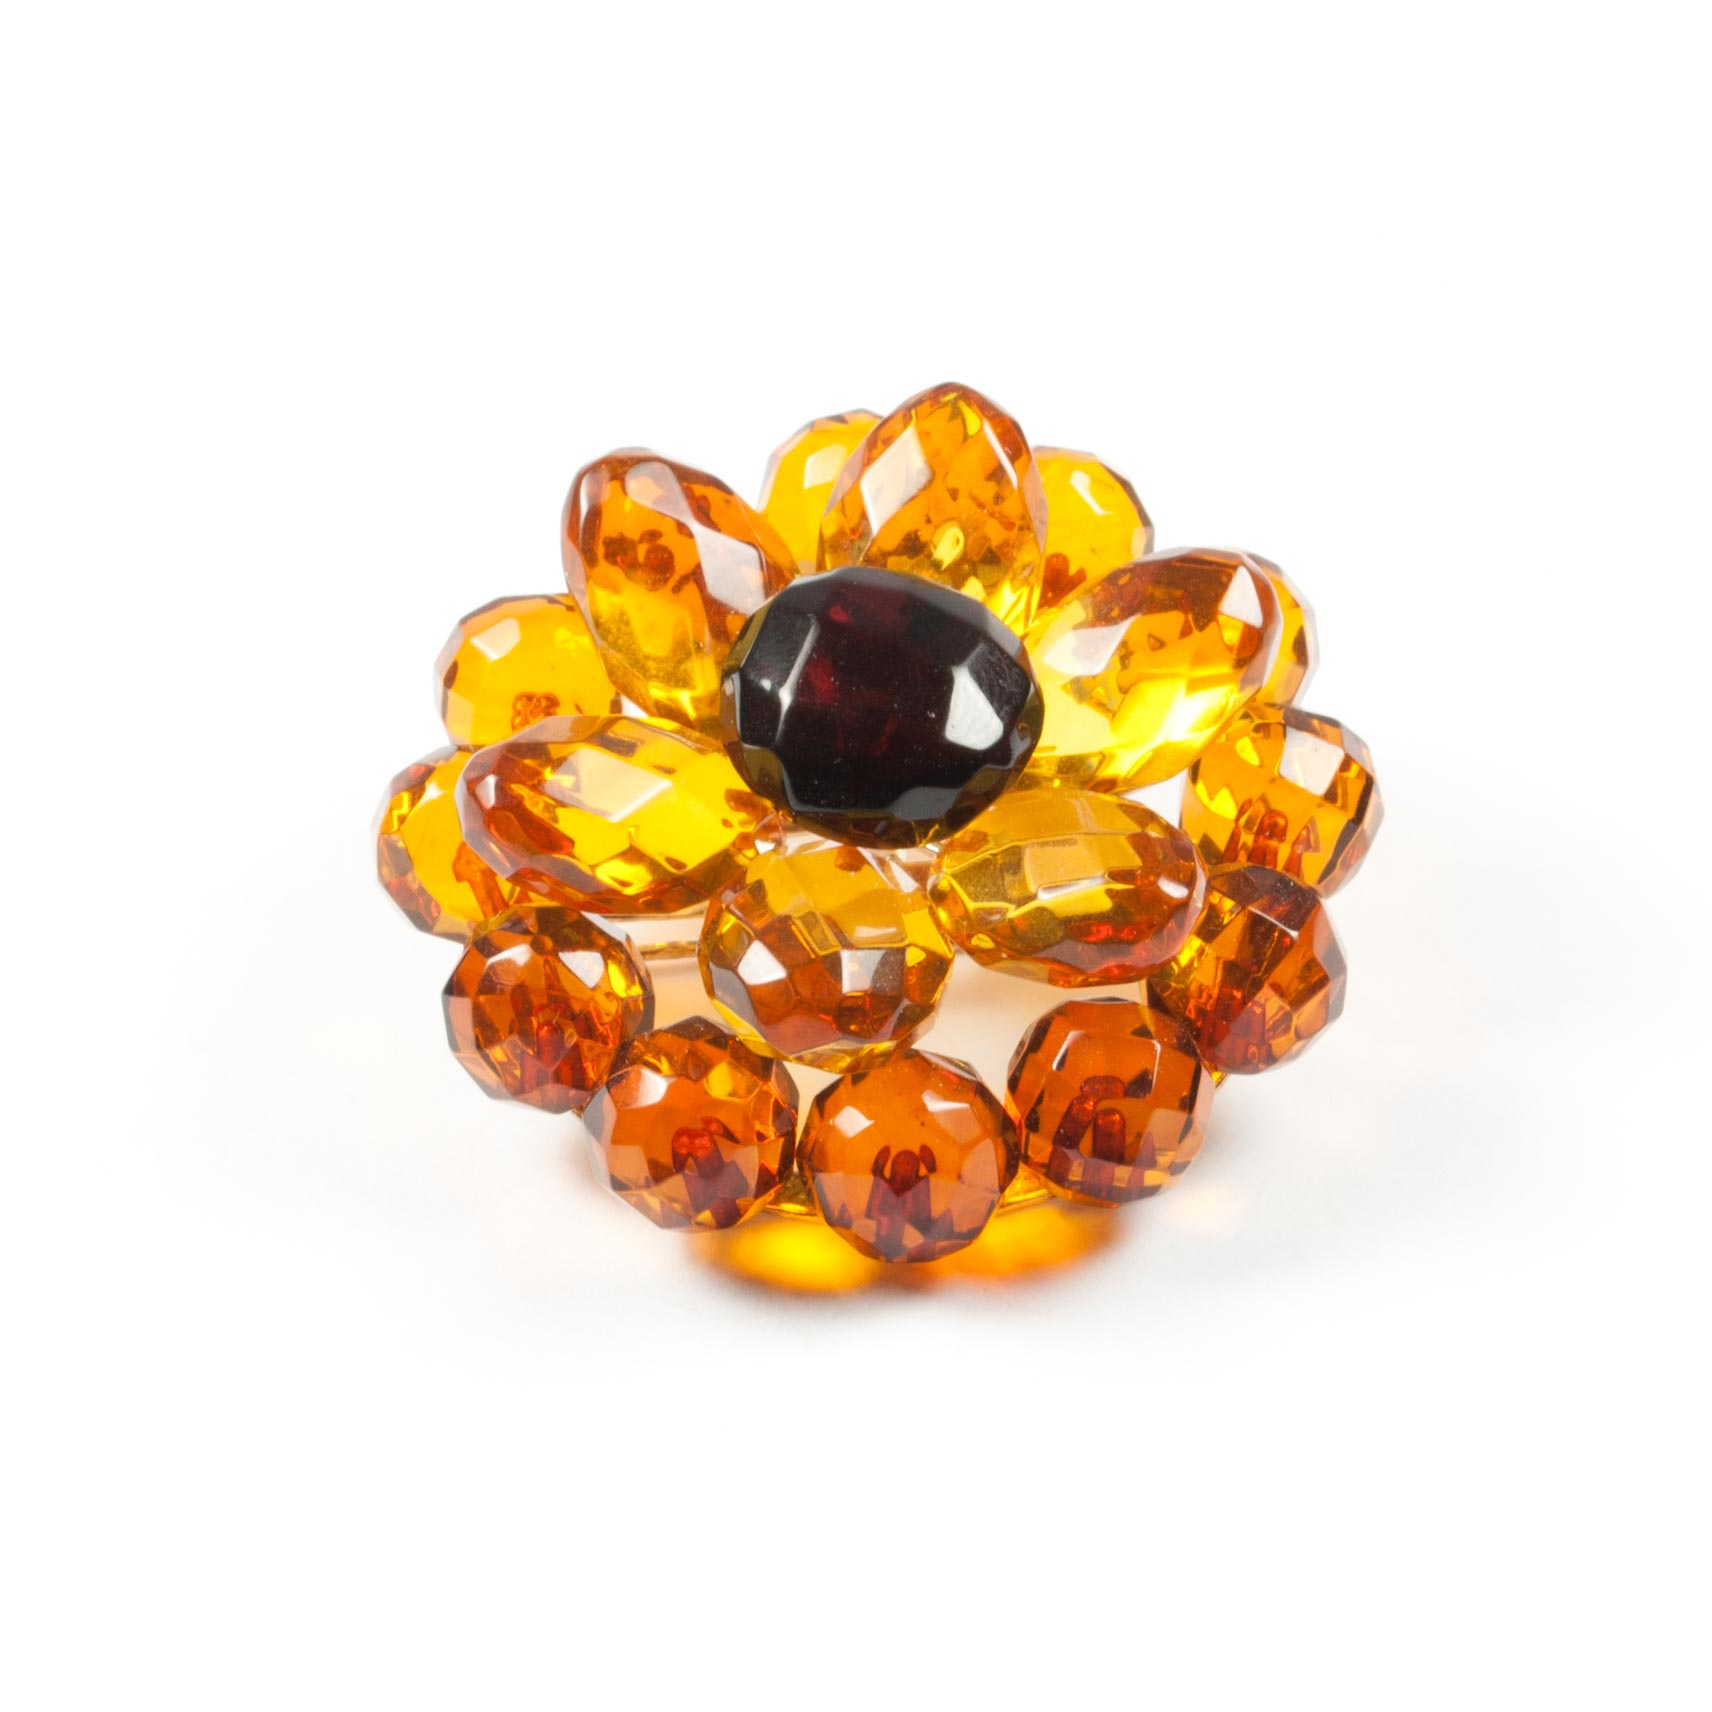 Natural Faceted Amber Brooch